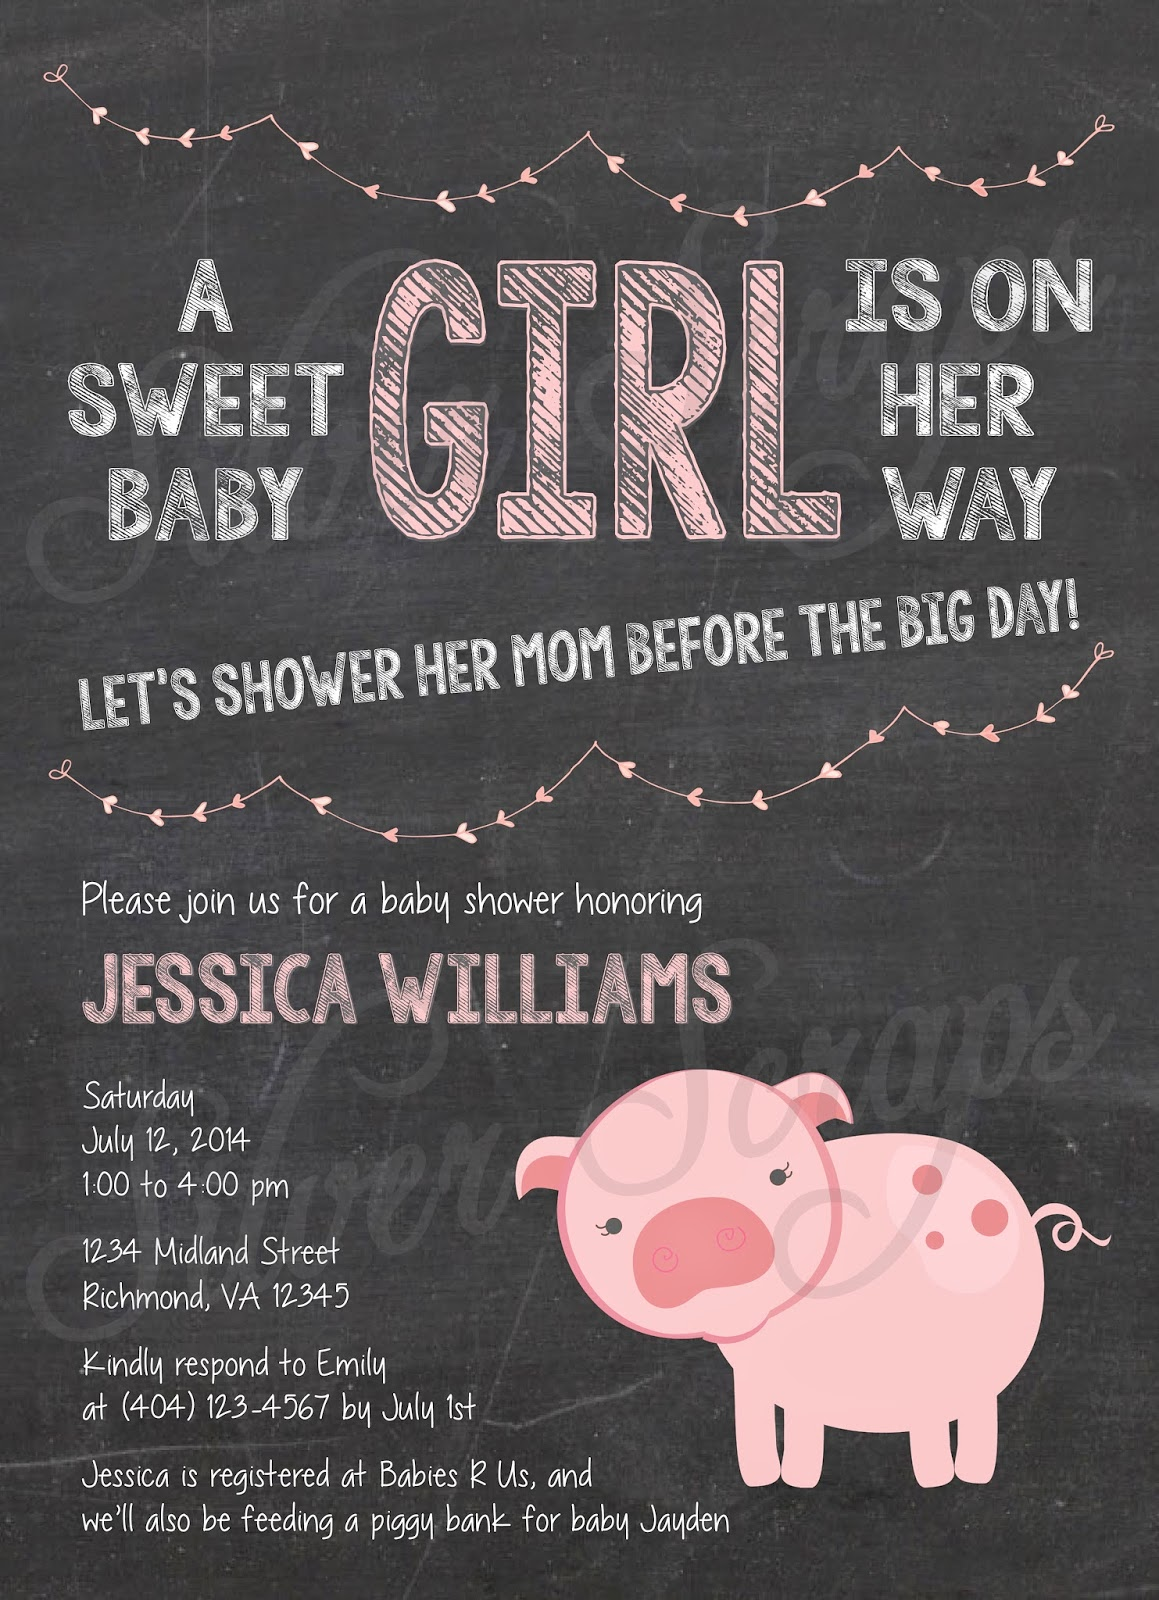 Chalkboard, Bunting and Pink Piggy Custom Girl Baby Shower Invitation - Pig Farm Garland Banner Flags Chalk Black White - 5 Printable Designs - Silver Scraps Peach Light Pink Blush Cream String of Hearts